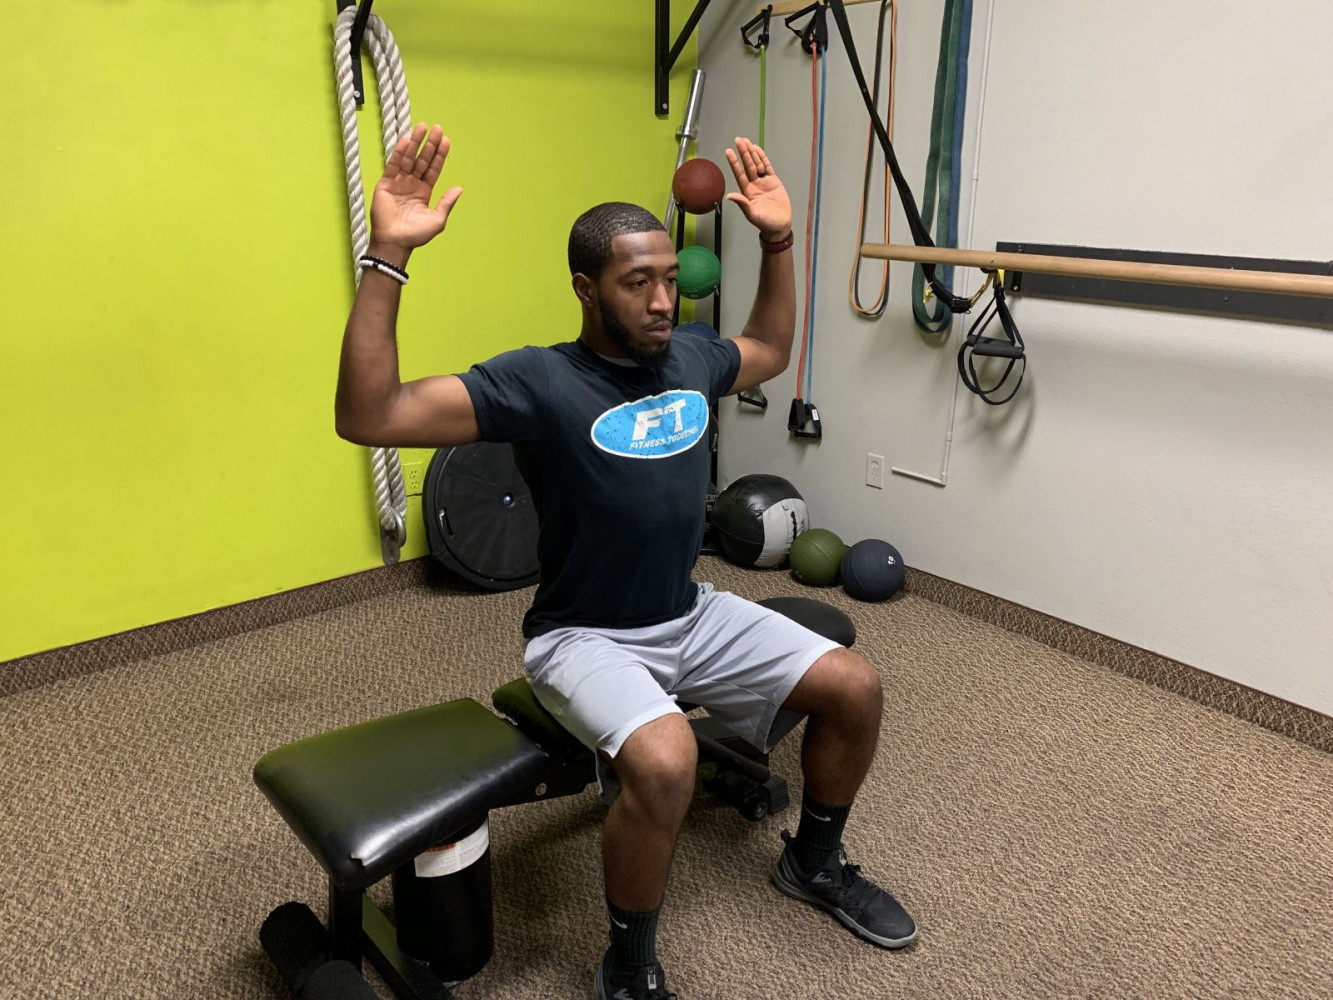 Trainer Corner: The Importance of Mobility